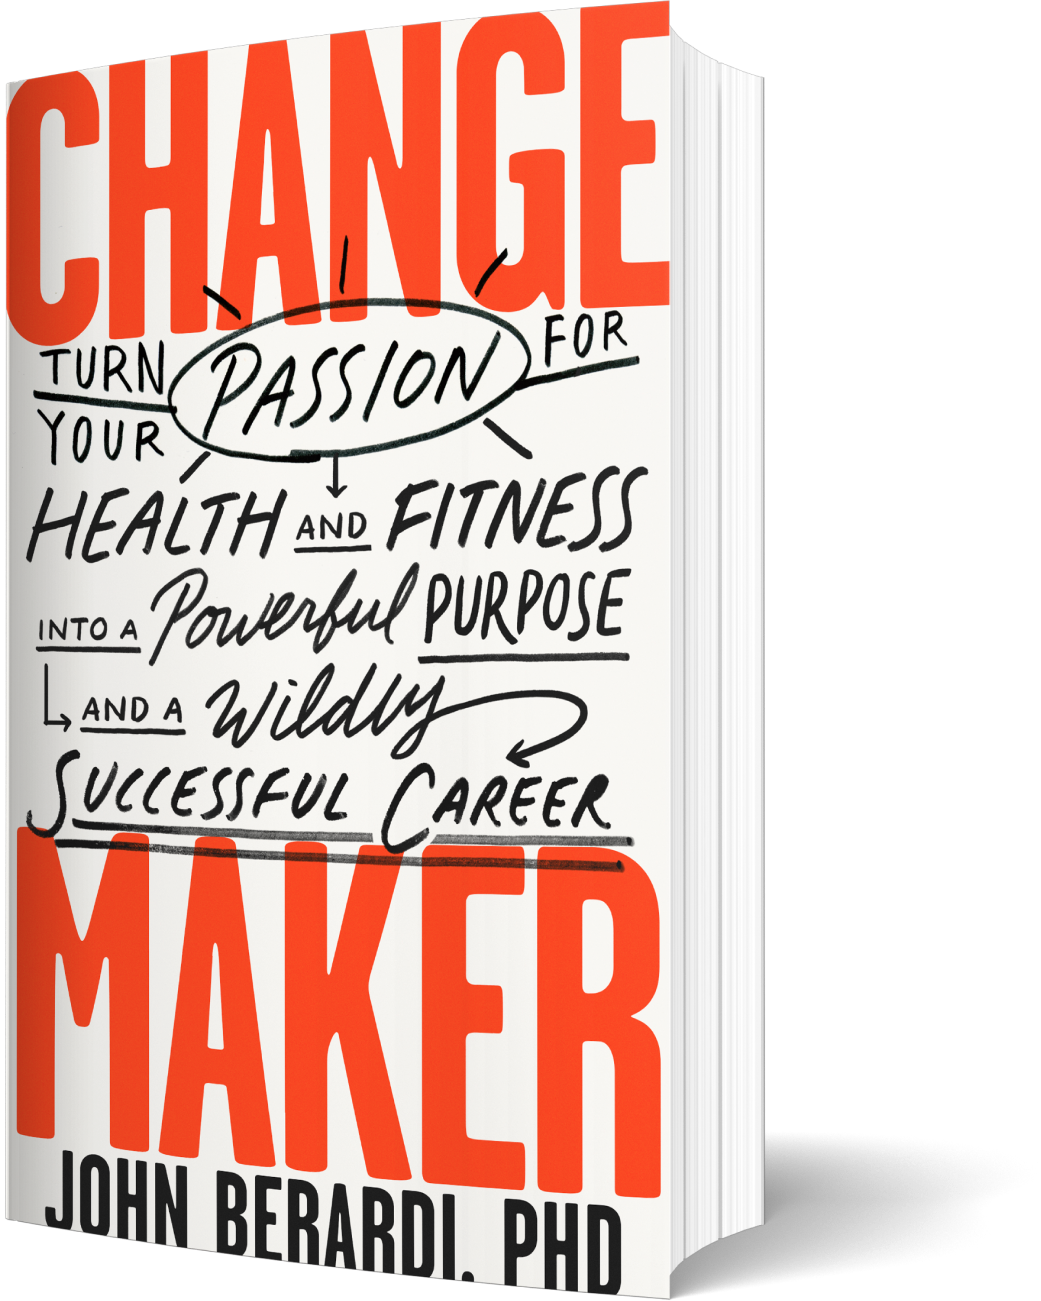 A Brief Review of Change Maker by John Berardi